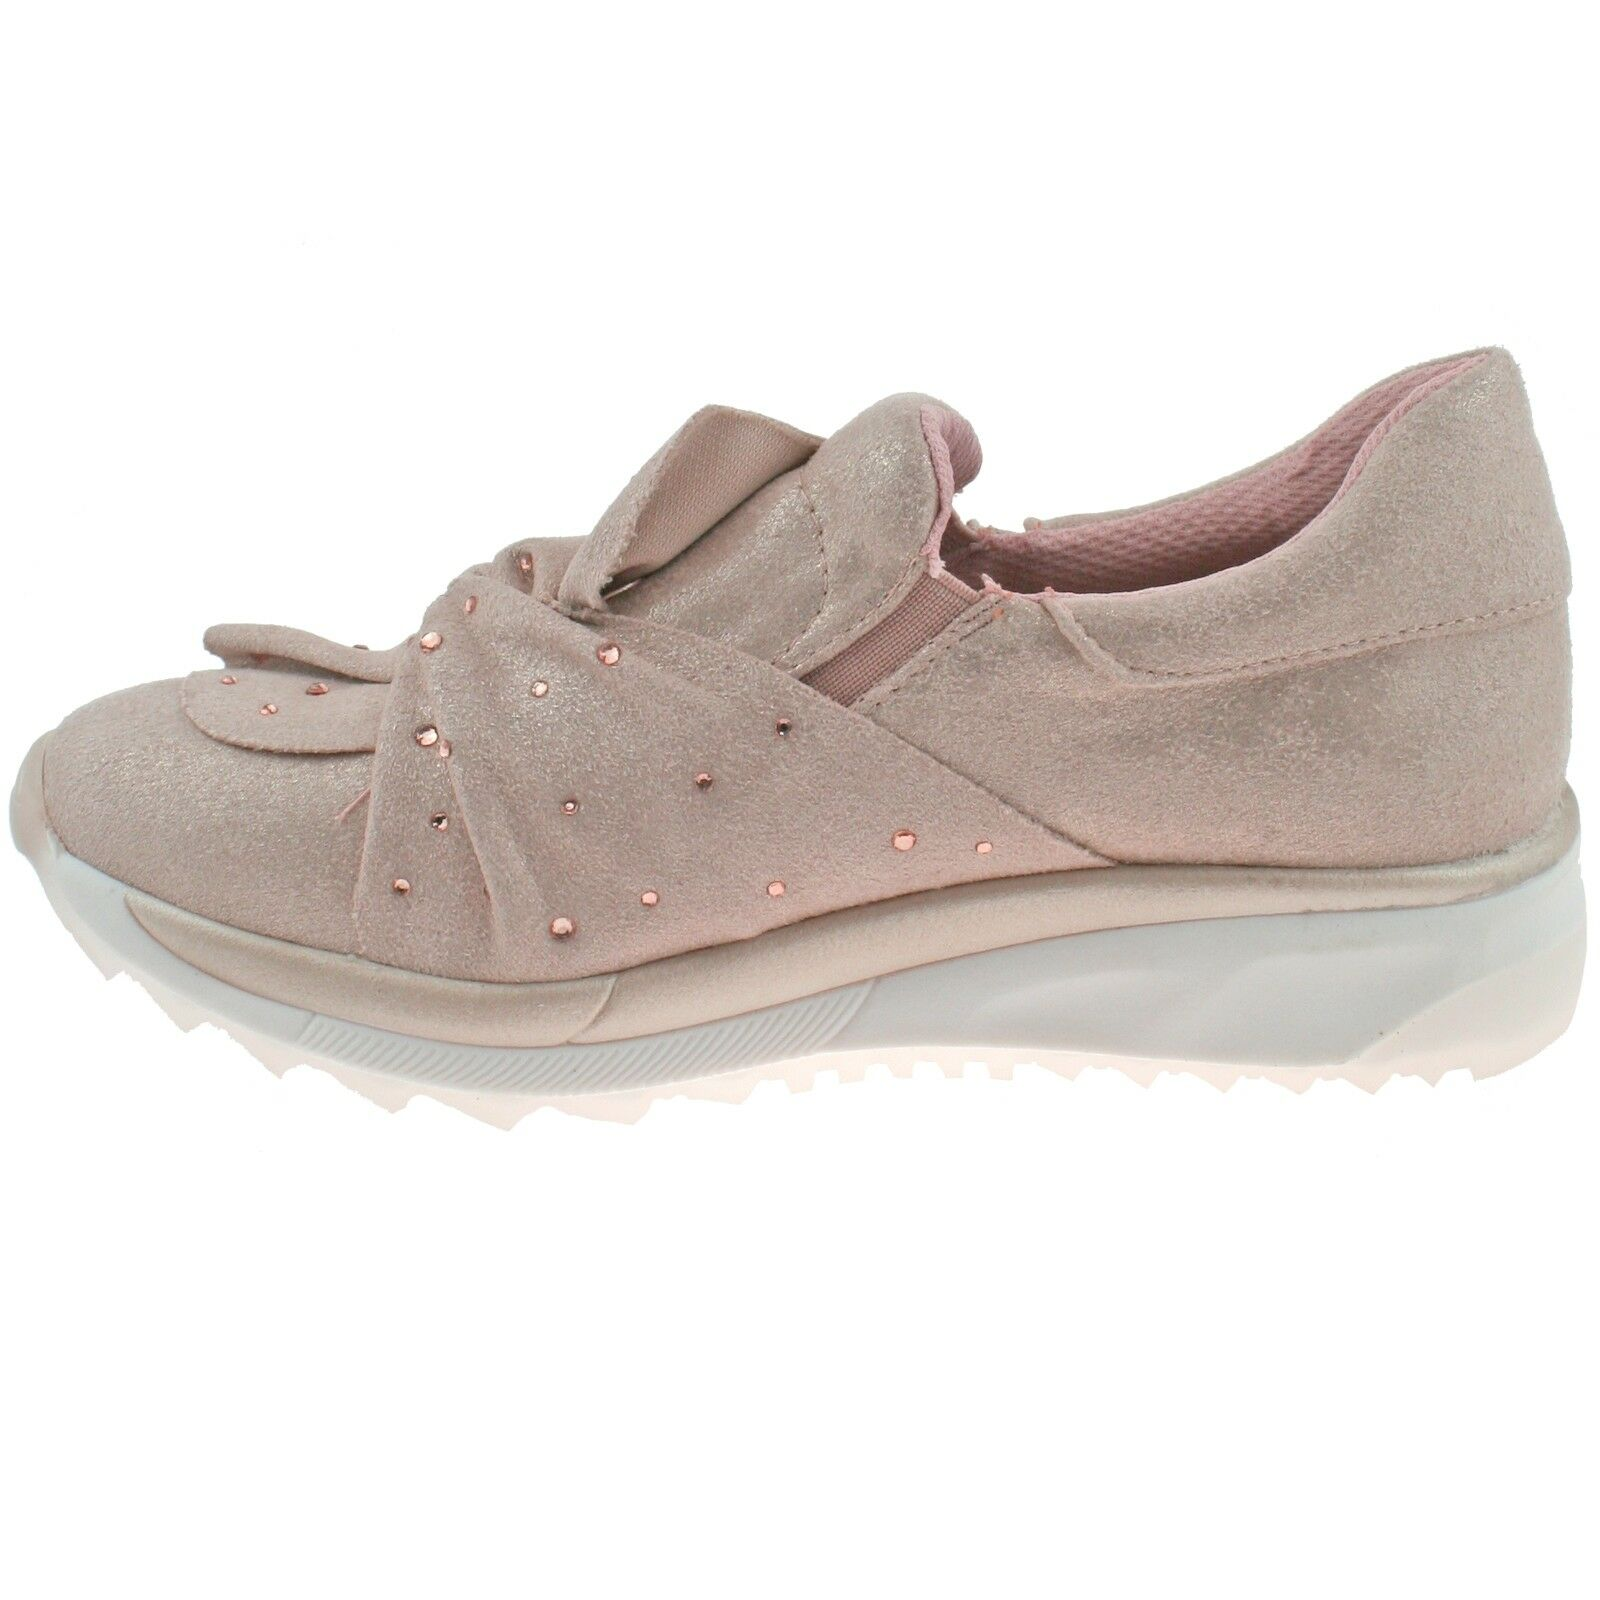 SALE Xti Kids Rose Gold Girls Slip on Pumps with Fashionable Bow Twist